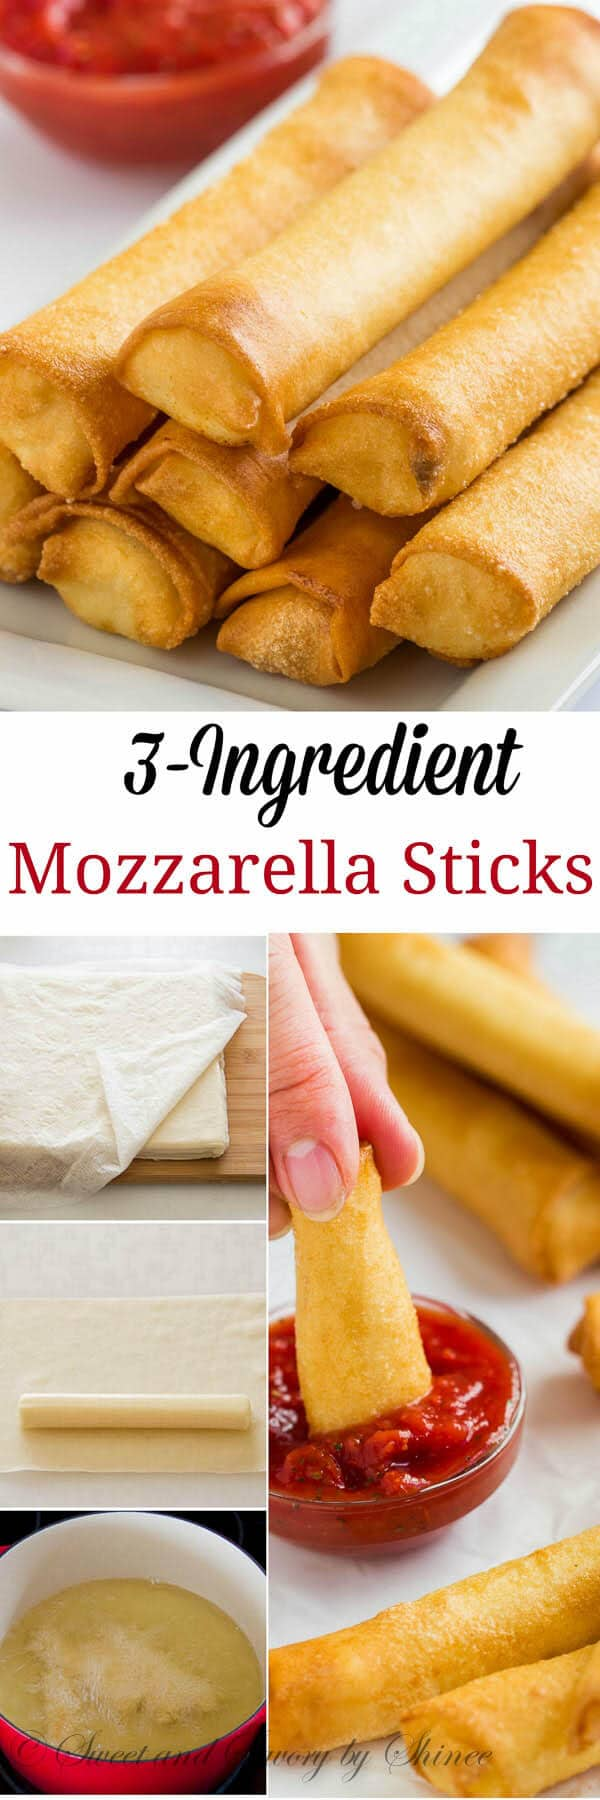 Delicately light and crispy, these 3-ingredient mozzarella sticks are so easy to make. Pair them with a side of great marinara and enjoy your game-day.